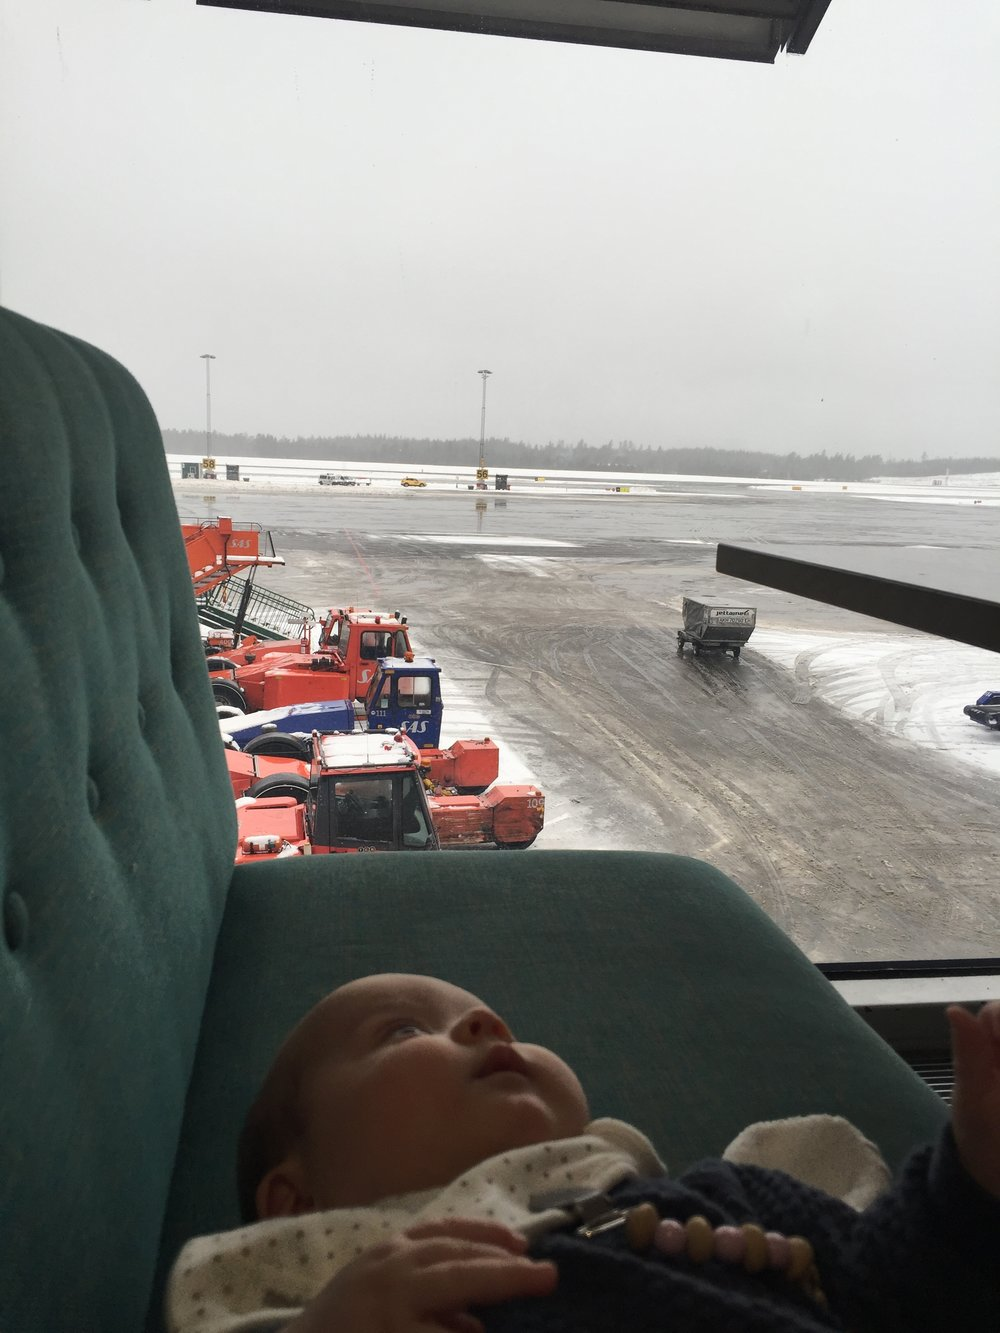 Waiting for one of her first flights when she still didn't like to hang out in the baby carrier